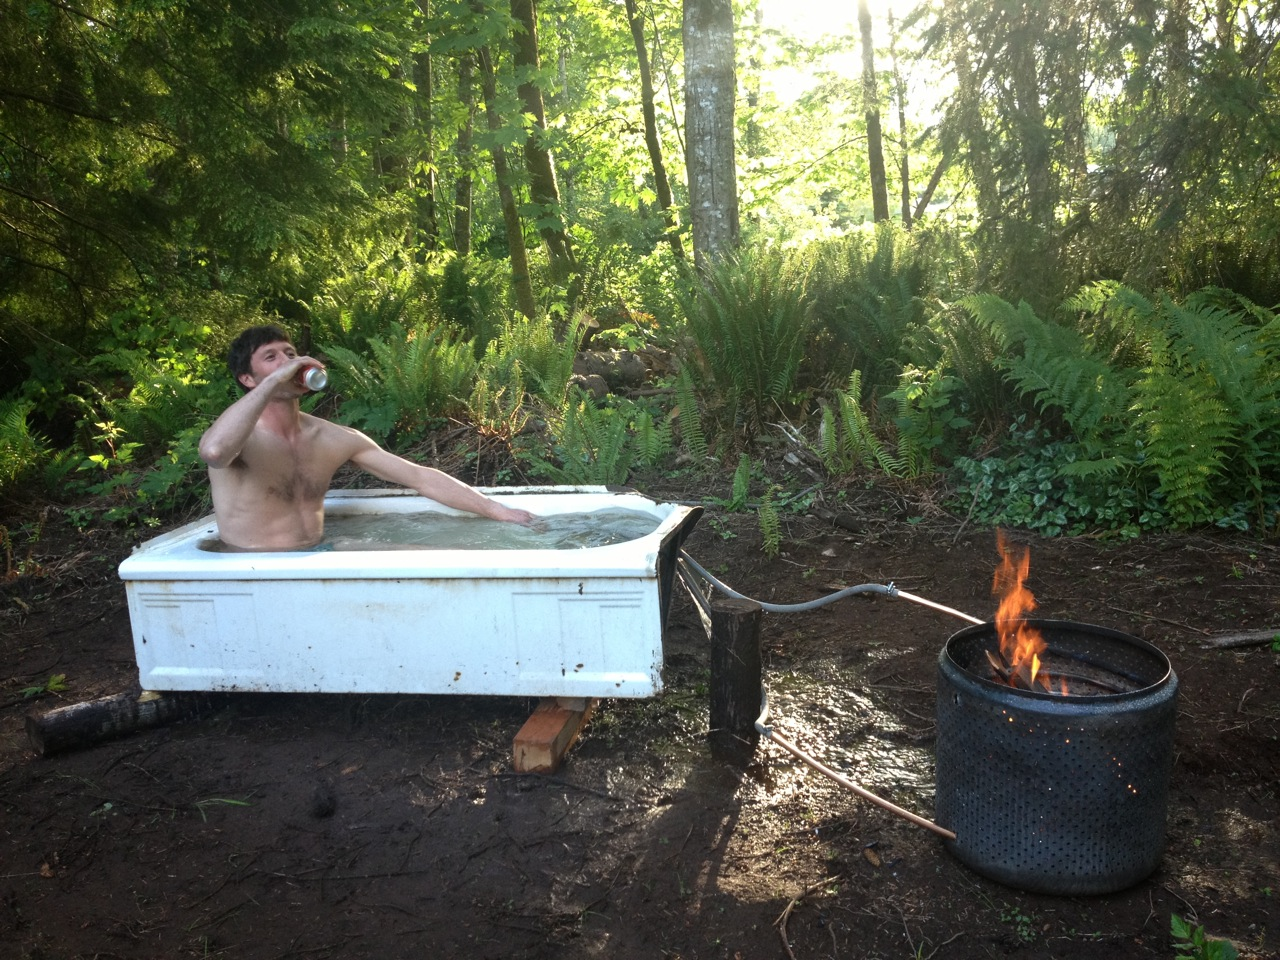 Diy Hot Tub 10 Diy Hot Tubs That Are Inexpensive To Build The Self